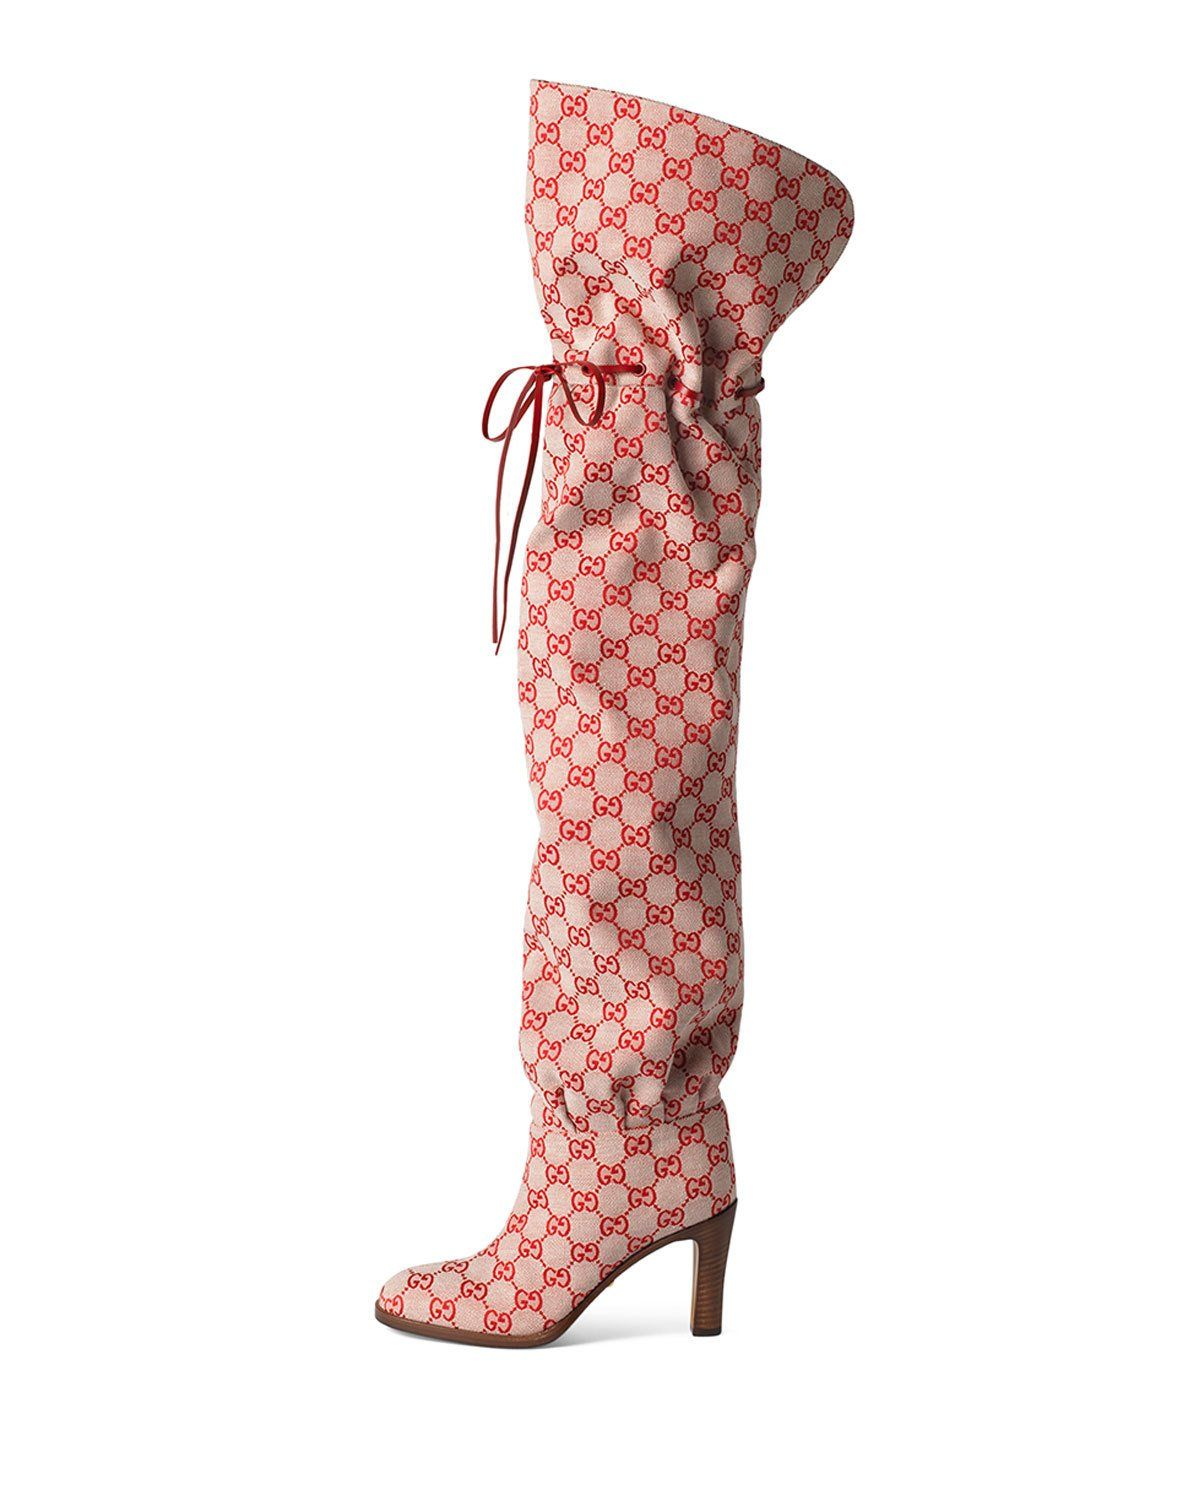 7d67aa3393a Lisa 95mm Over The Knee GG Fabric Boot in 2019 | Products | Shoes ...